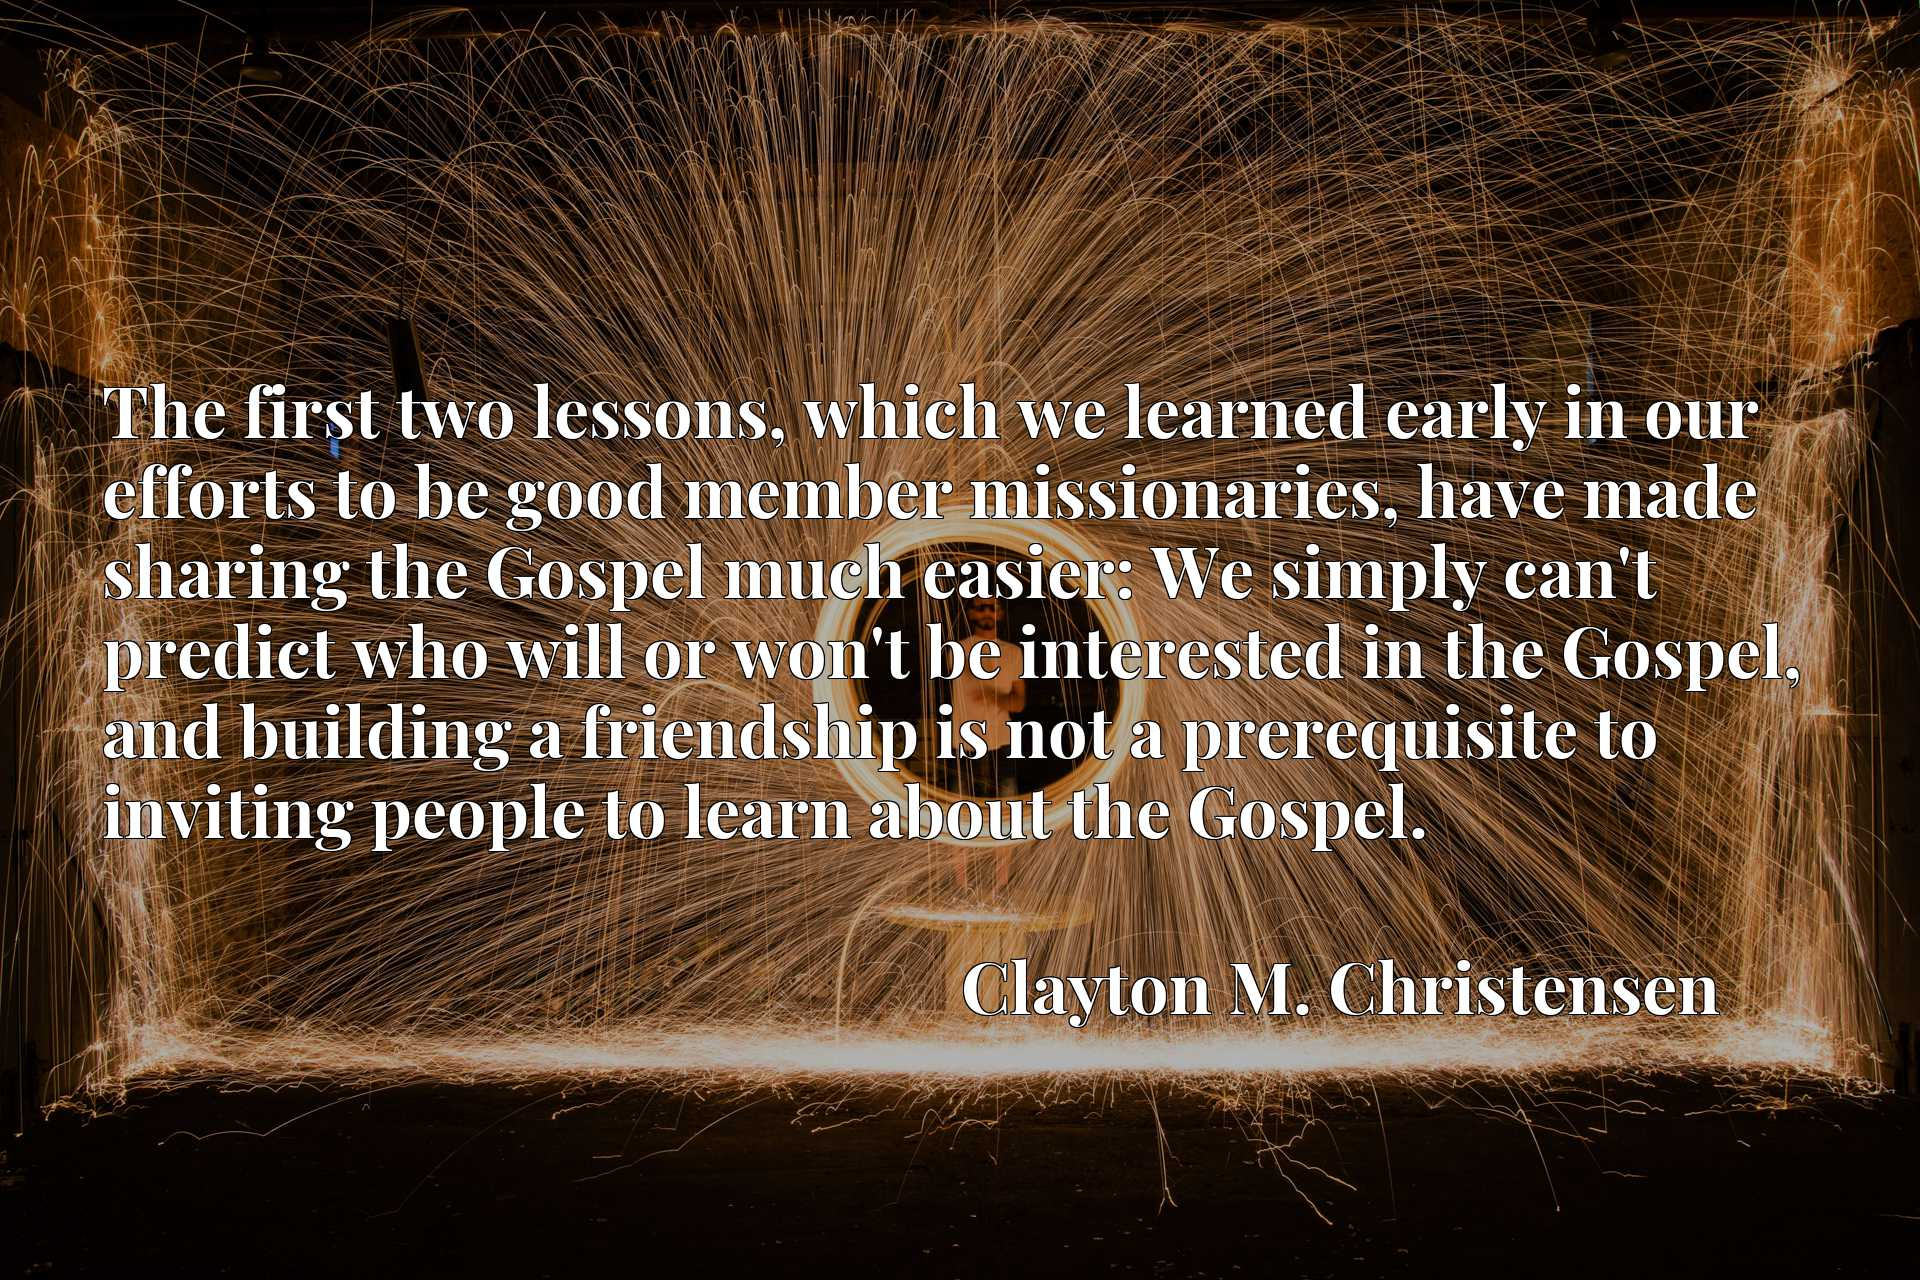 The first two lessons, which we learned early in our efforts to be good member missionaries, have made sharing the Gospel much easier: We simply can't predict who will or won't be interested in the Gospel, and building a friendship is not a prerequisite to inviting people to learn about the Gospel.